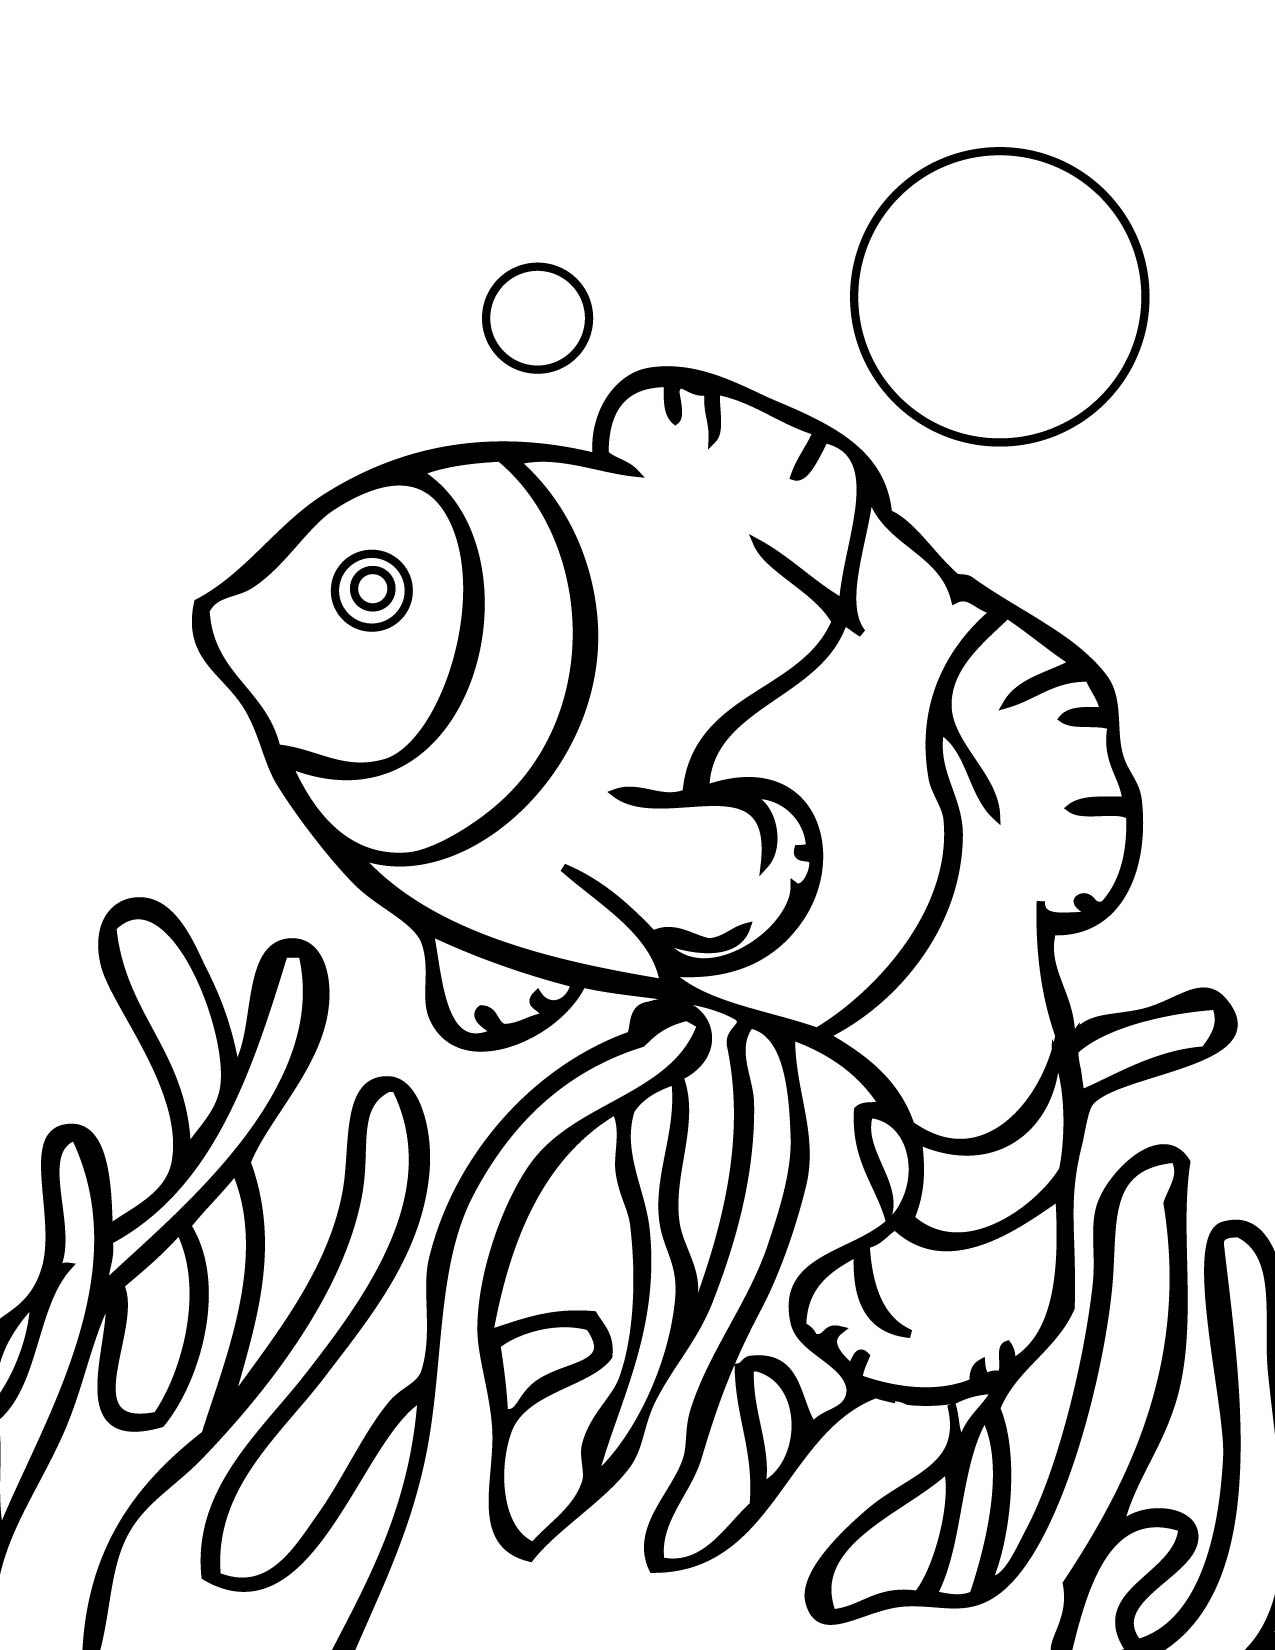 austrailan barrier reef coloring pages - photo#33